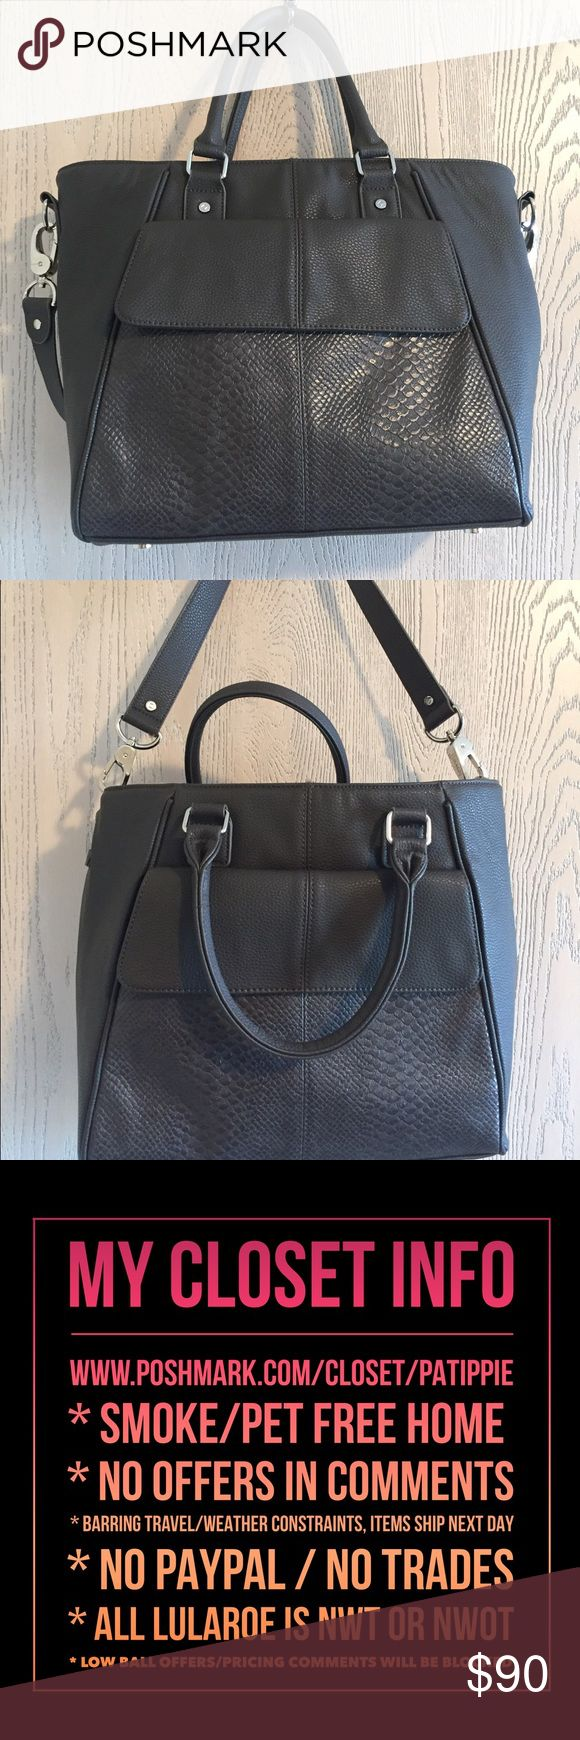 Gray Diamond District Gray Diamond District.  Approx 12 x 12.25 x 4.5 with a 5.5 handle drop. 31  Bags Totes